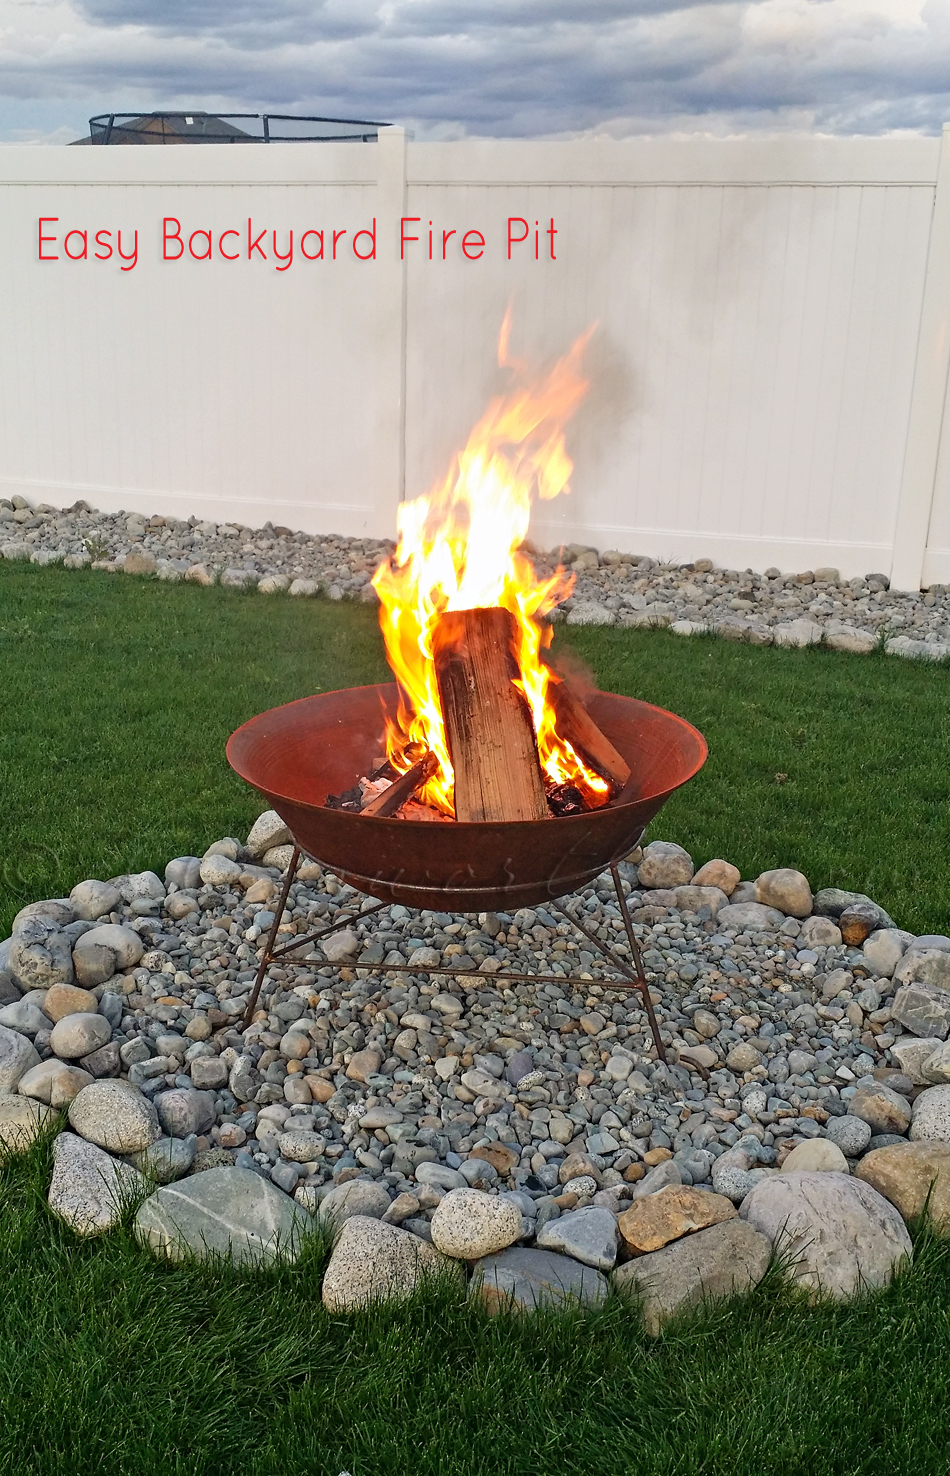 Easy Backyard Fire Pit In Less Than 30 Minutes Kleinworth Co